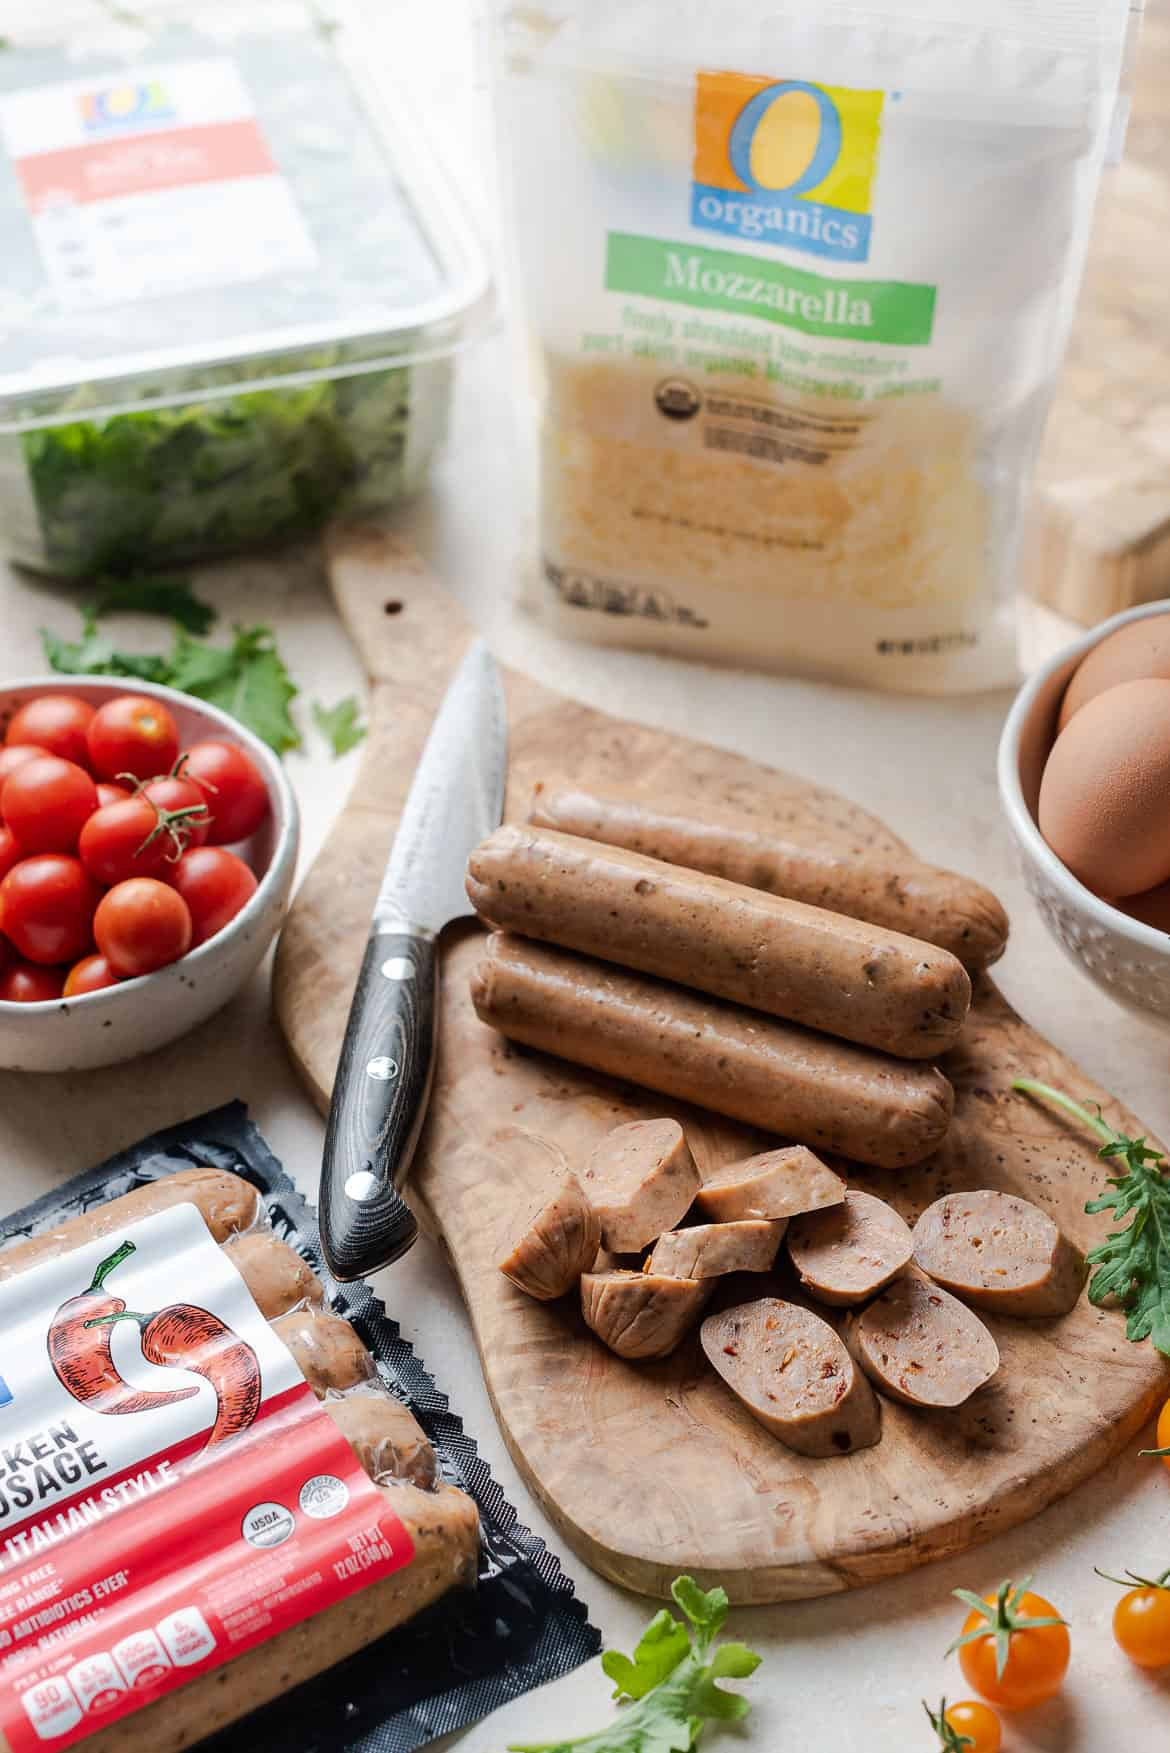 O Organics ingredients used to make an Italian sausage frittata.